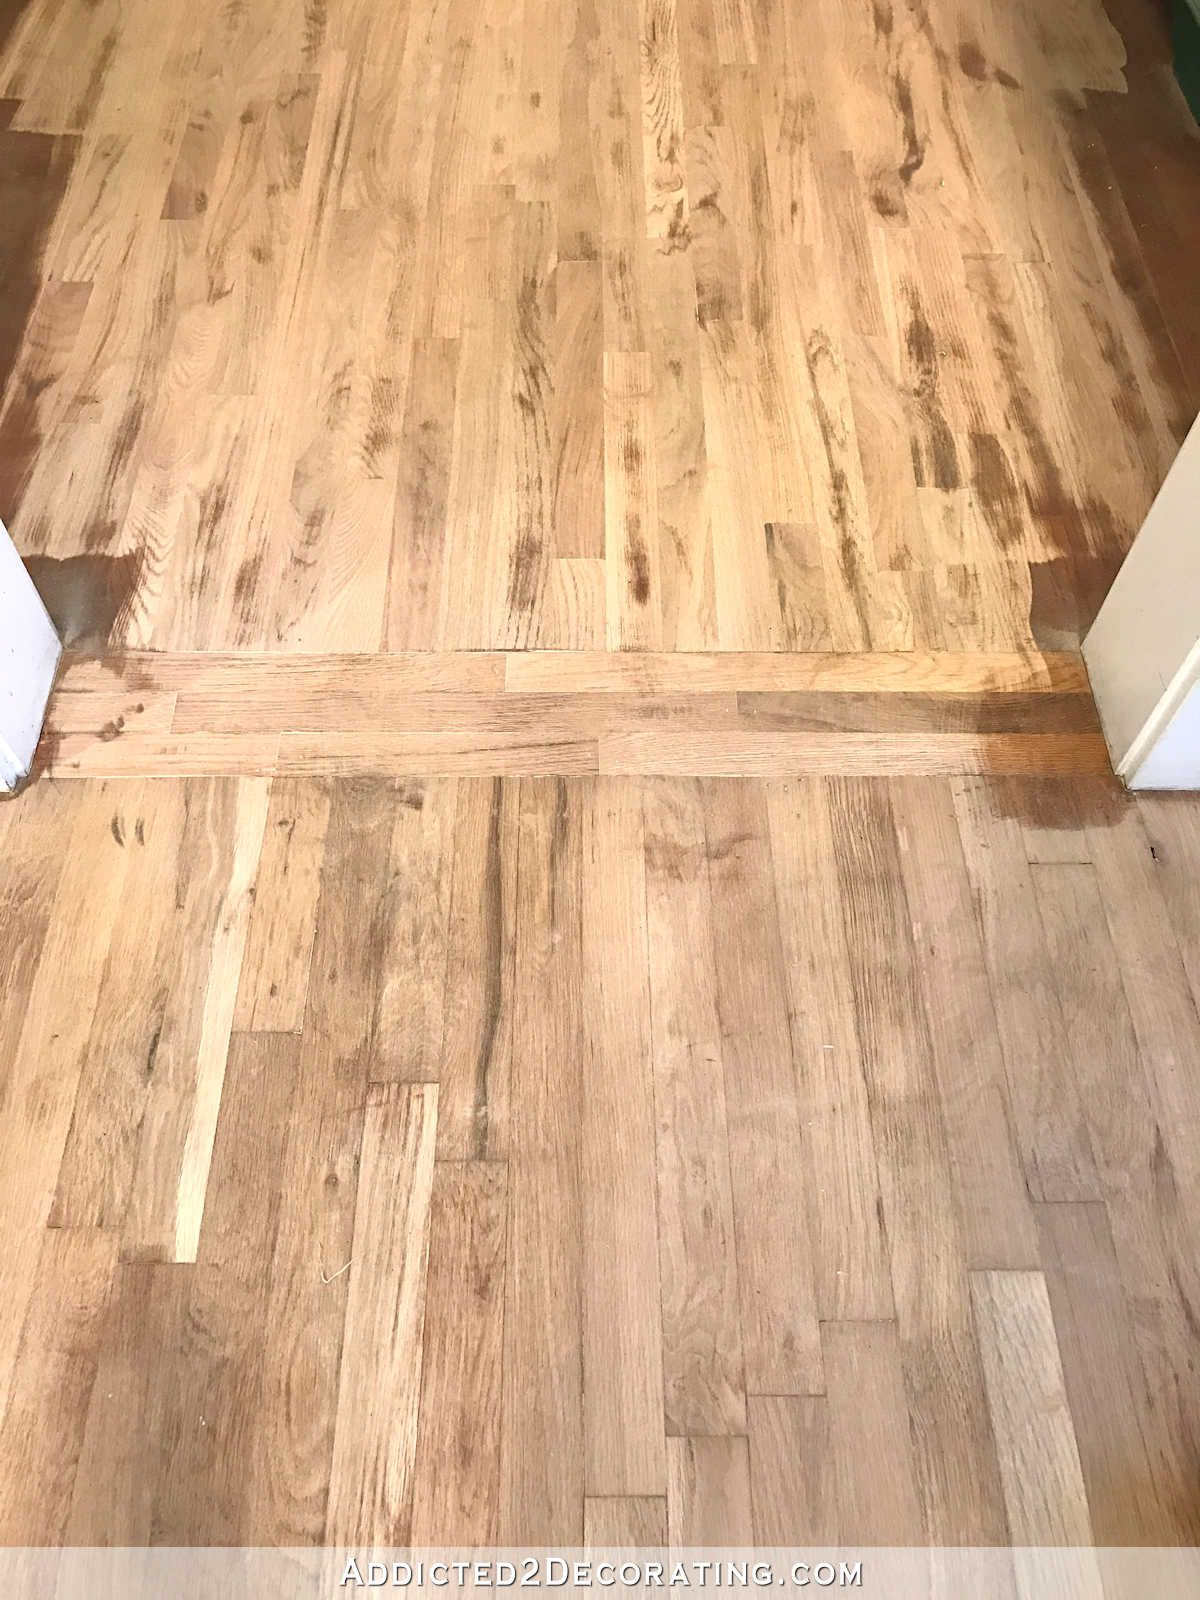 hardwood best list fine royal angie floors nashville cleaners regard floor inside care to flooring photos top s with tn simple